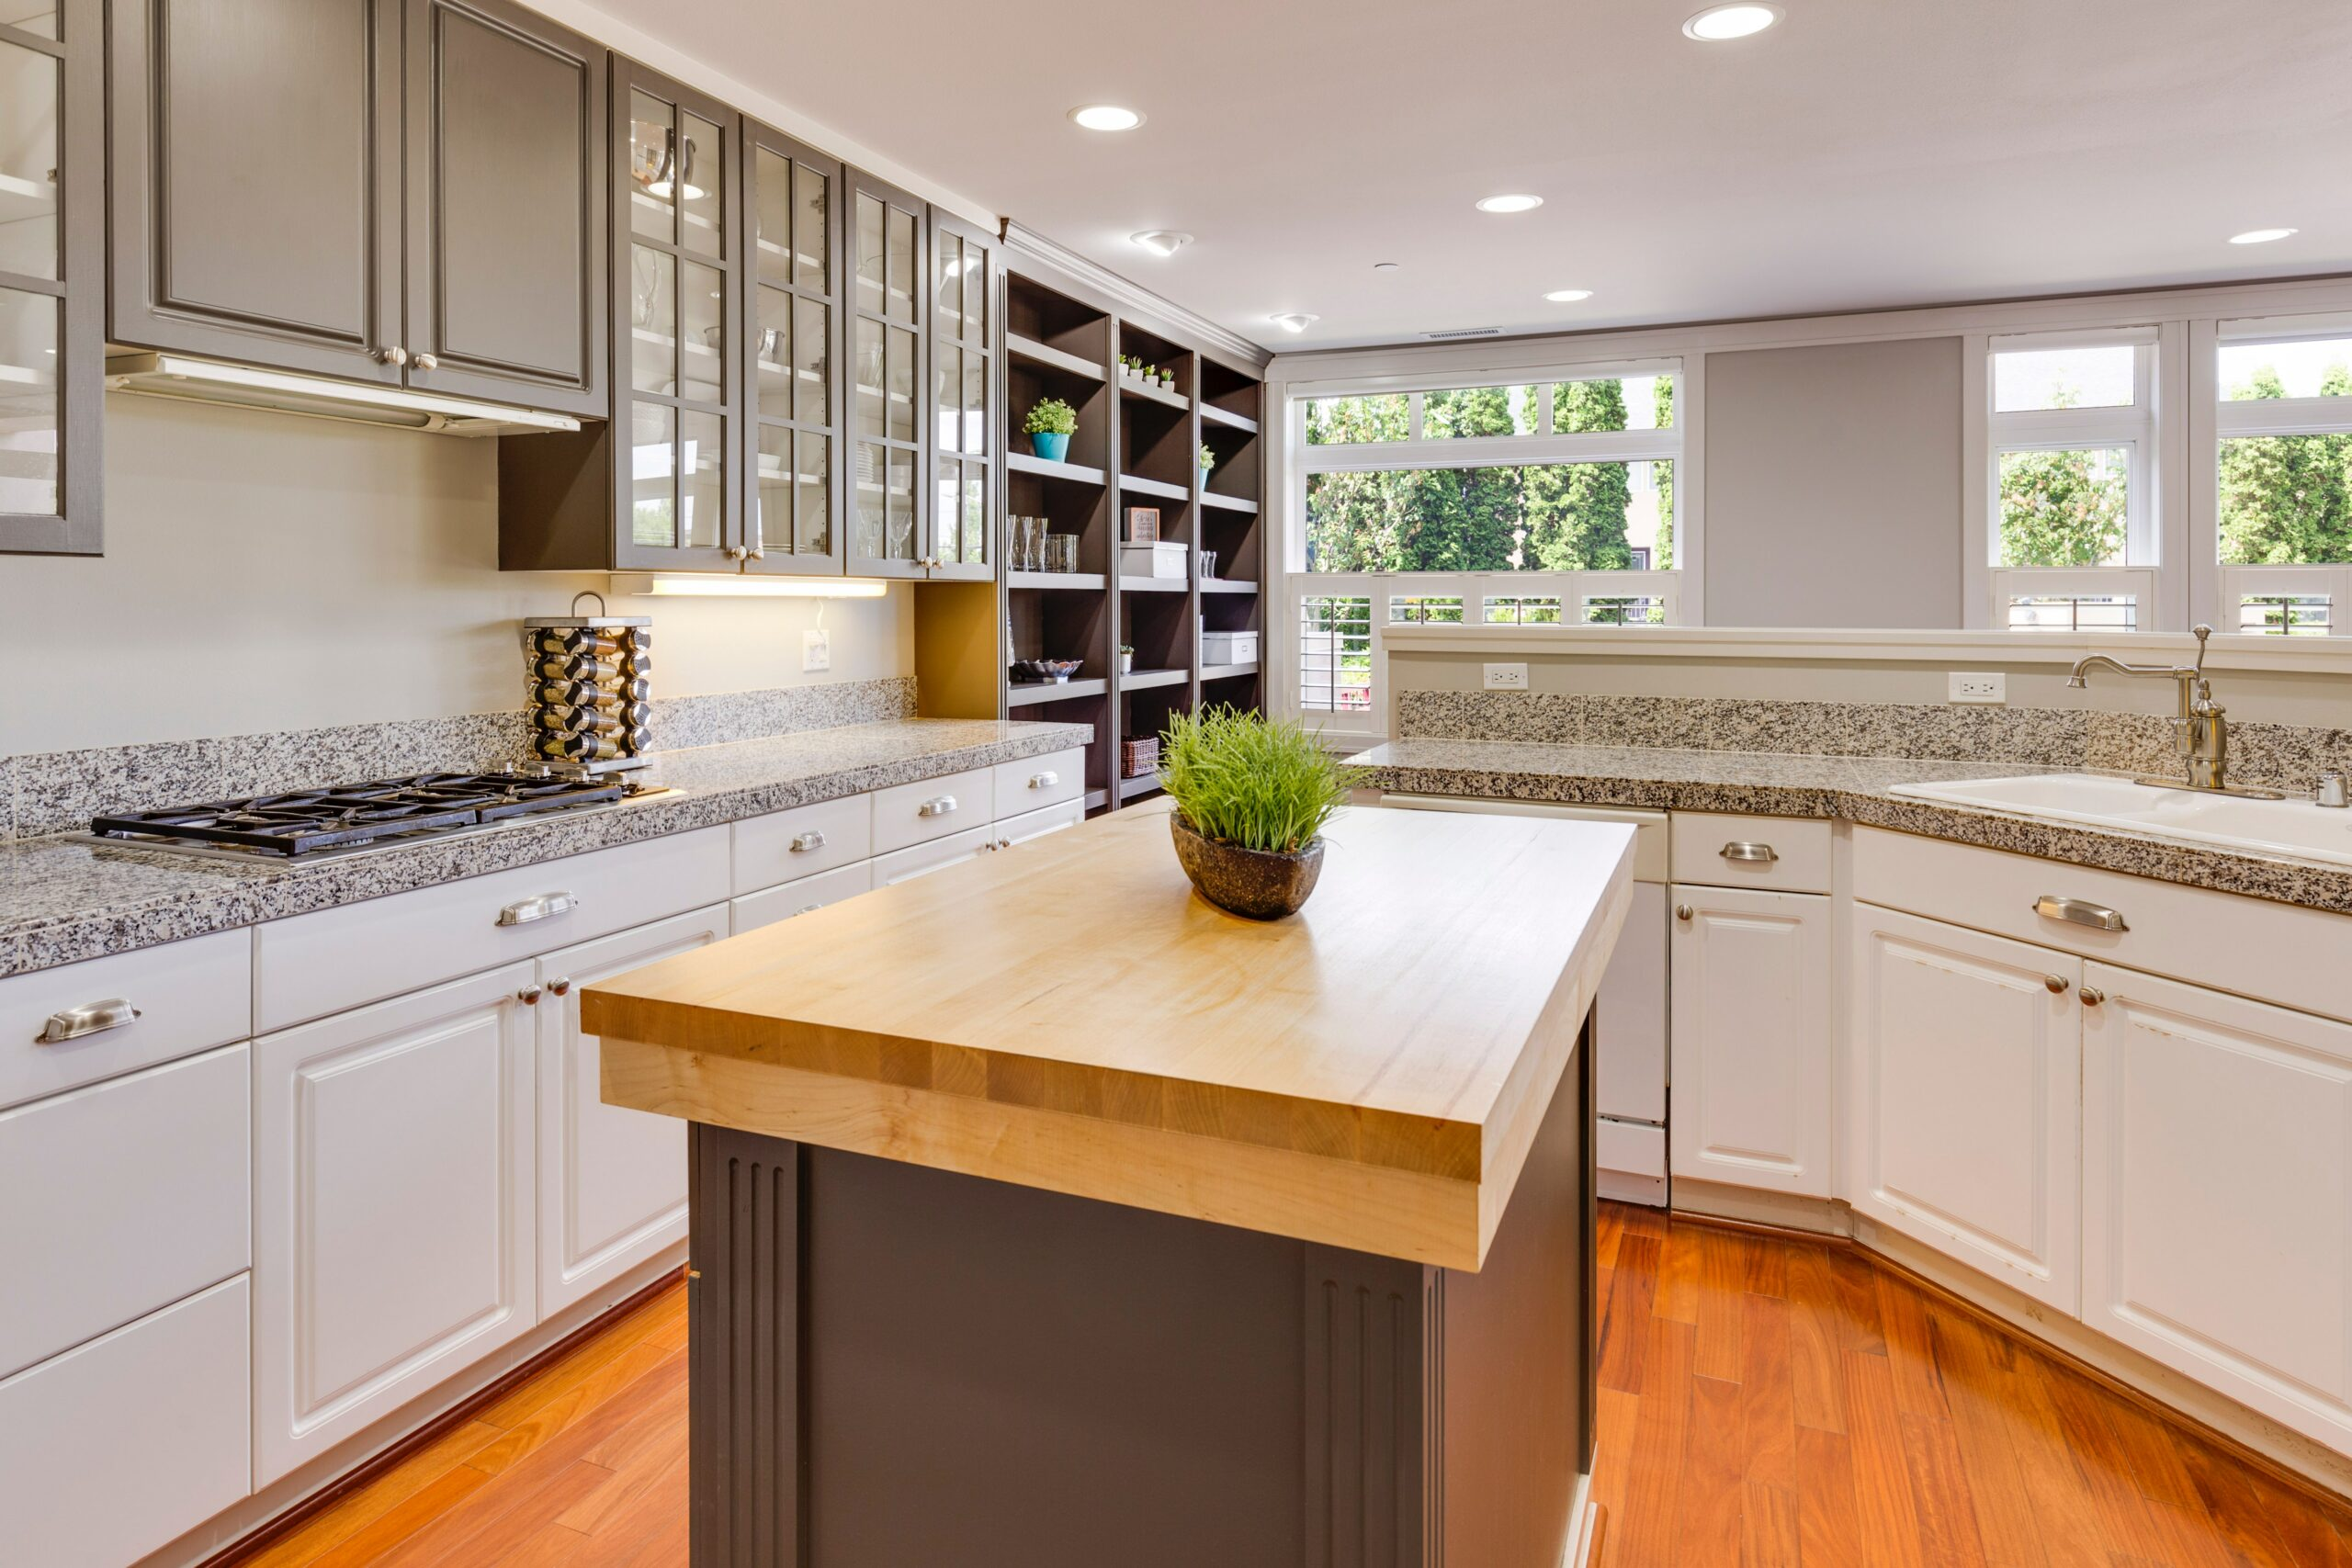 A kitchen with an island and plenty of counter space - cleared, clean counters